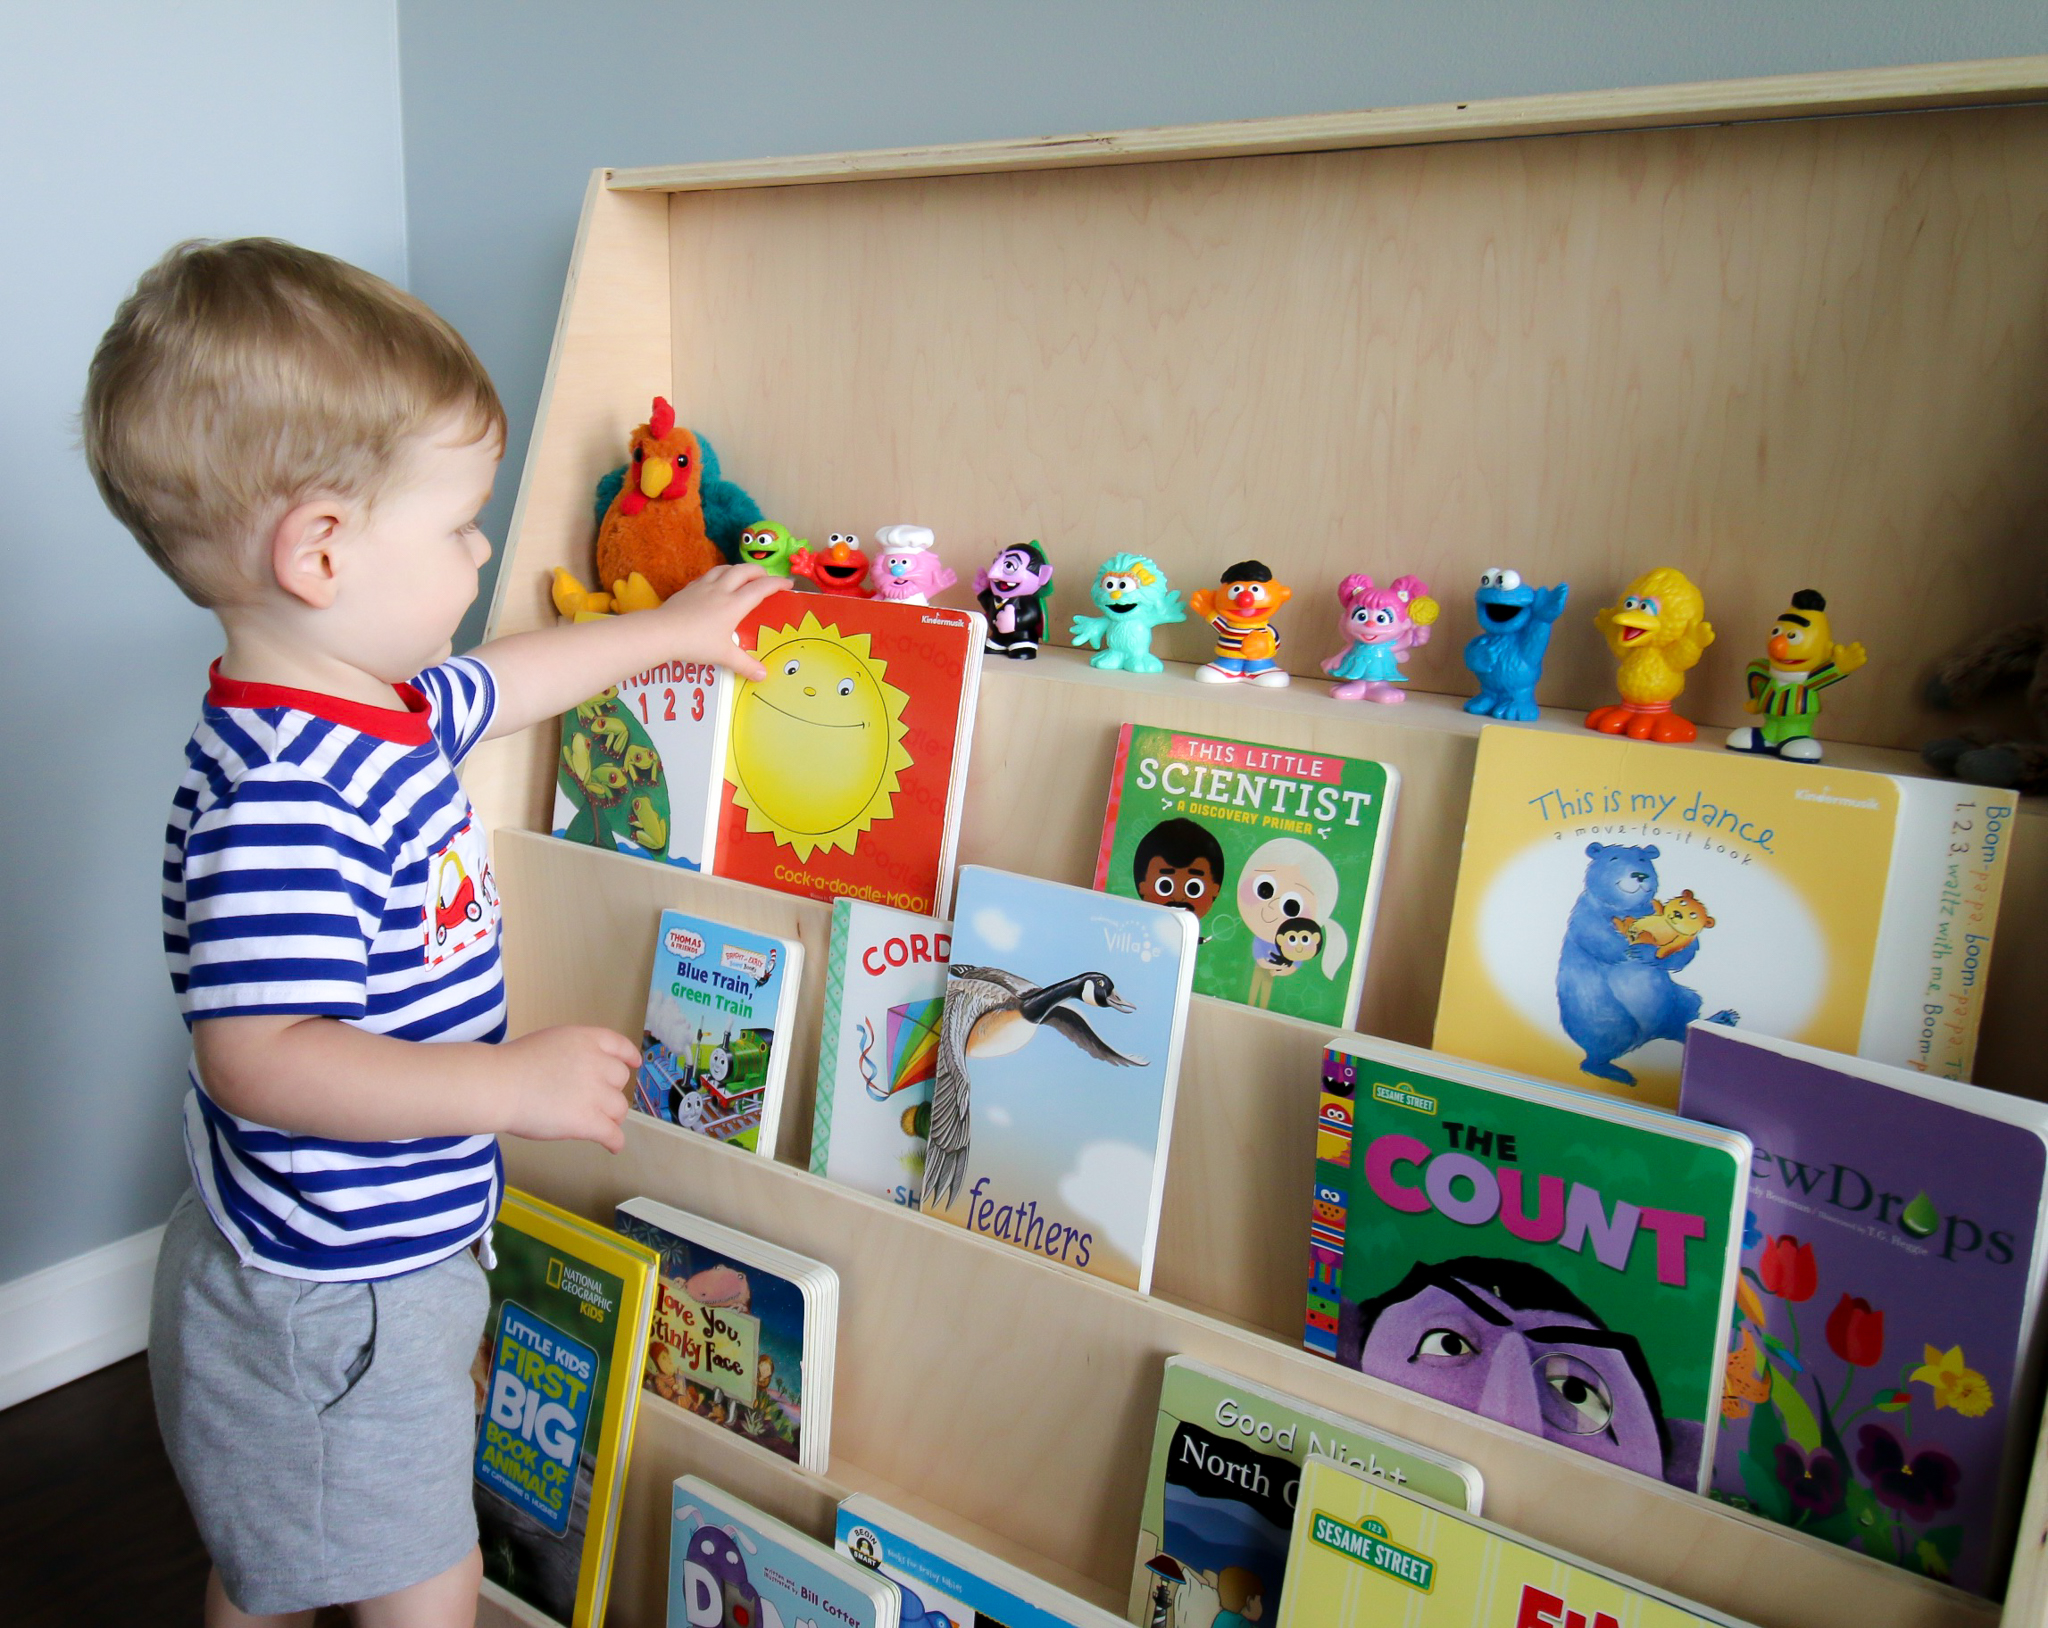 Toddler reaching for book